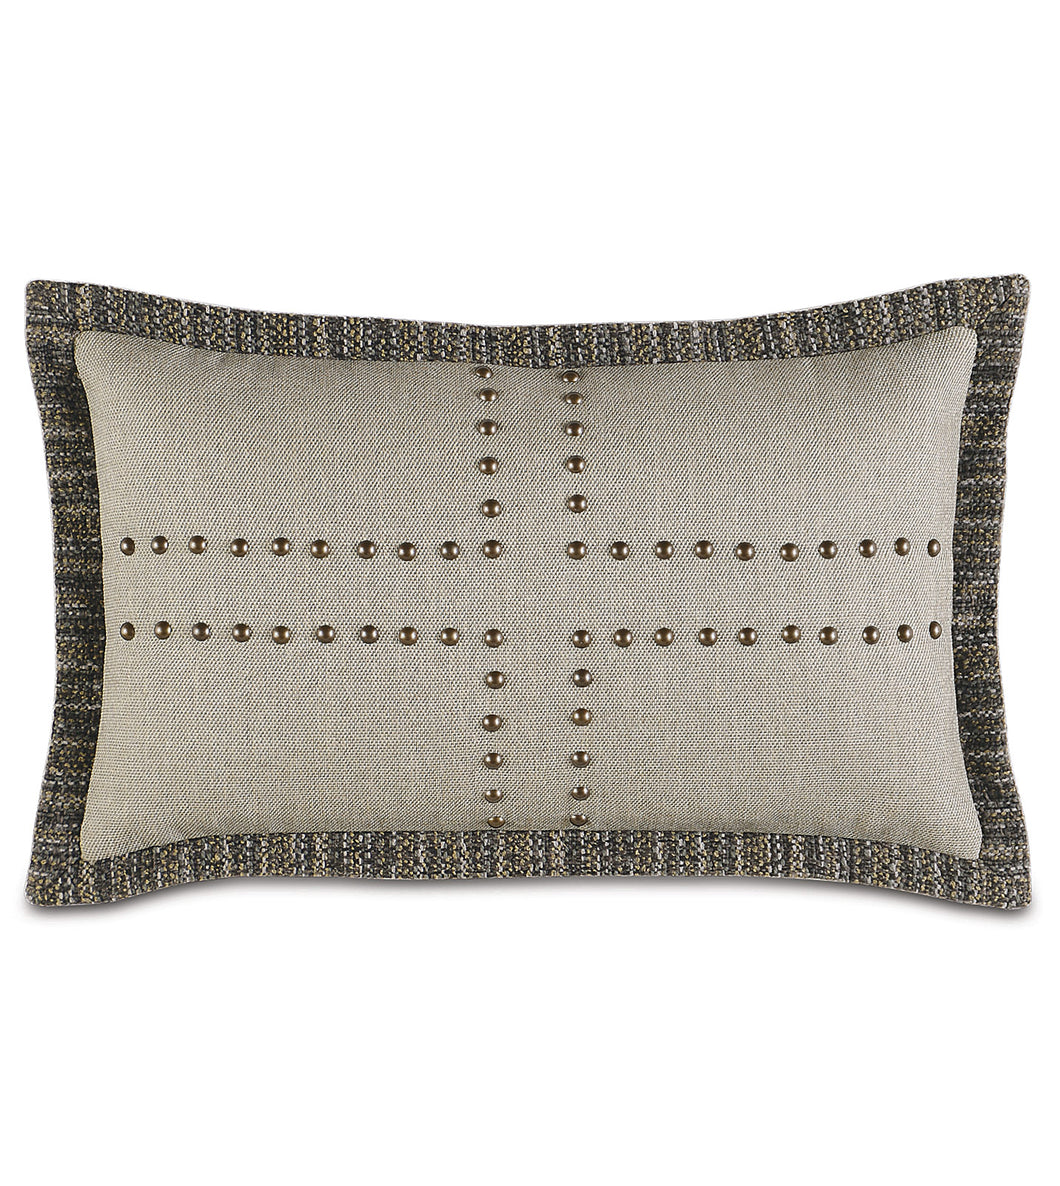 Reign Nailhead Flange Accent Pillow in Taupe 13